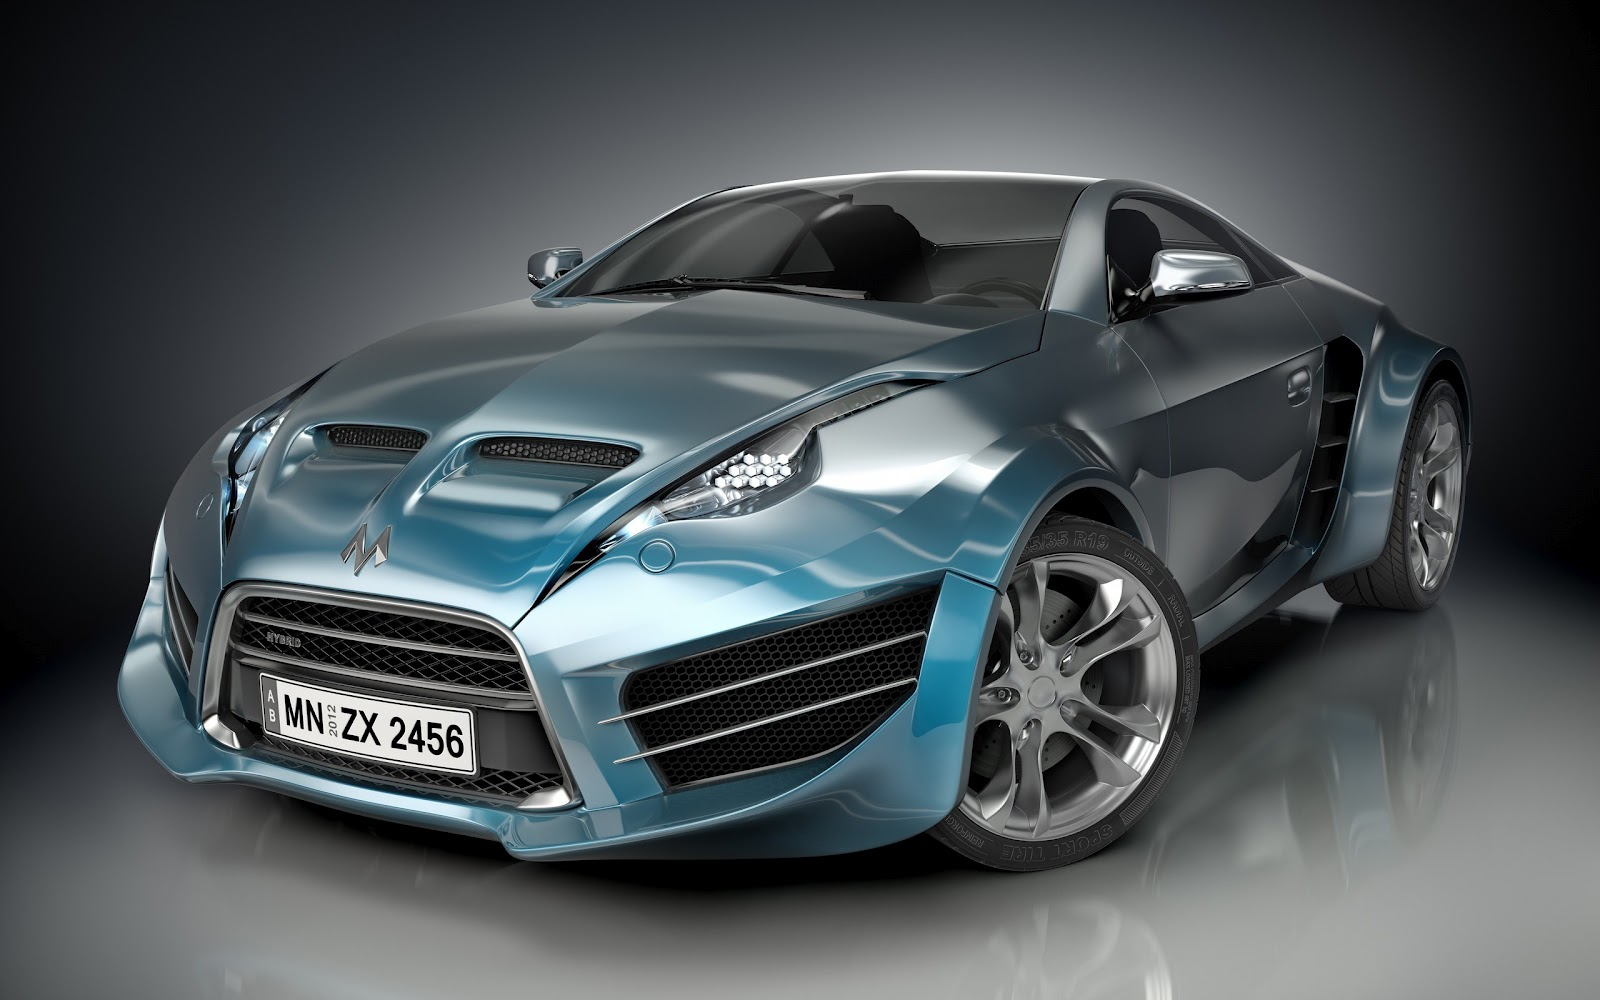 futuristic Hybrid supercar concept 2012 download wallpapers 1600x1000